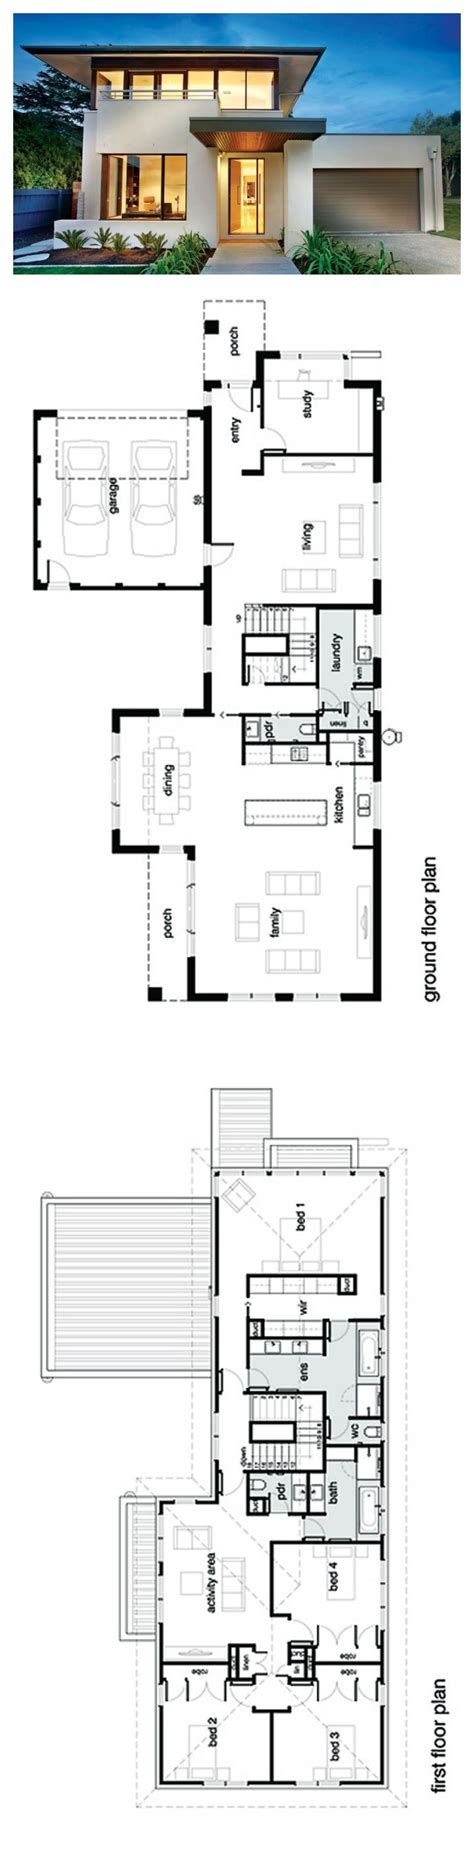 house plans and blueprints best 25 modern house plans ideas on pinterest modern floor plans modern house